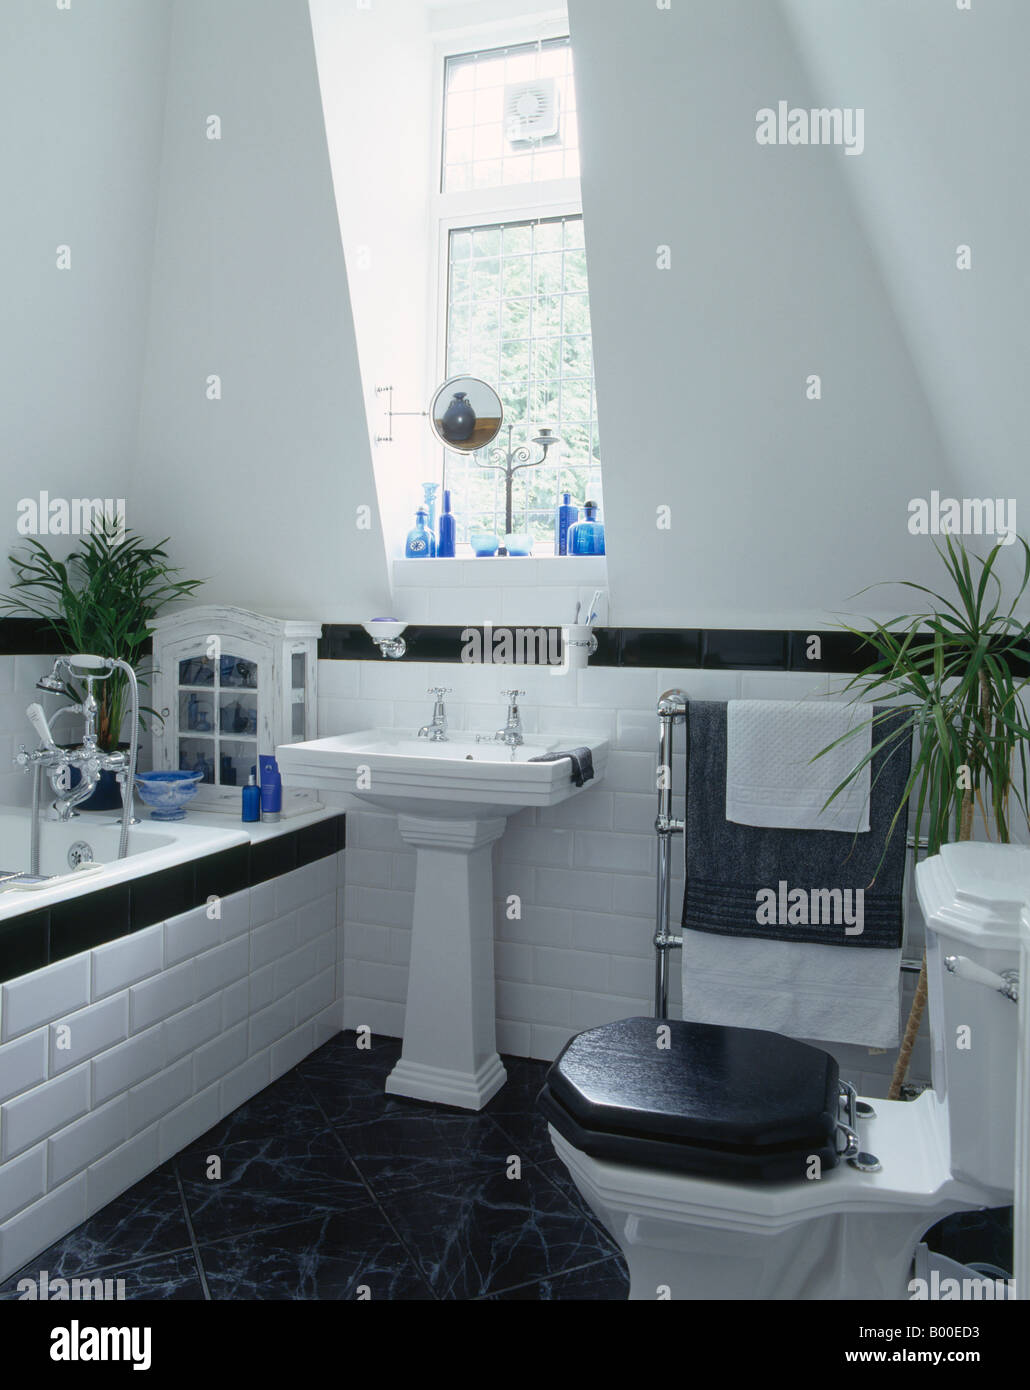 White Toilet With Black Seat. Black toilet seat and white pedestal basin in modern bathroom with  black flooring tiled dado